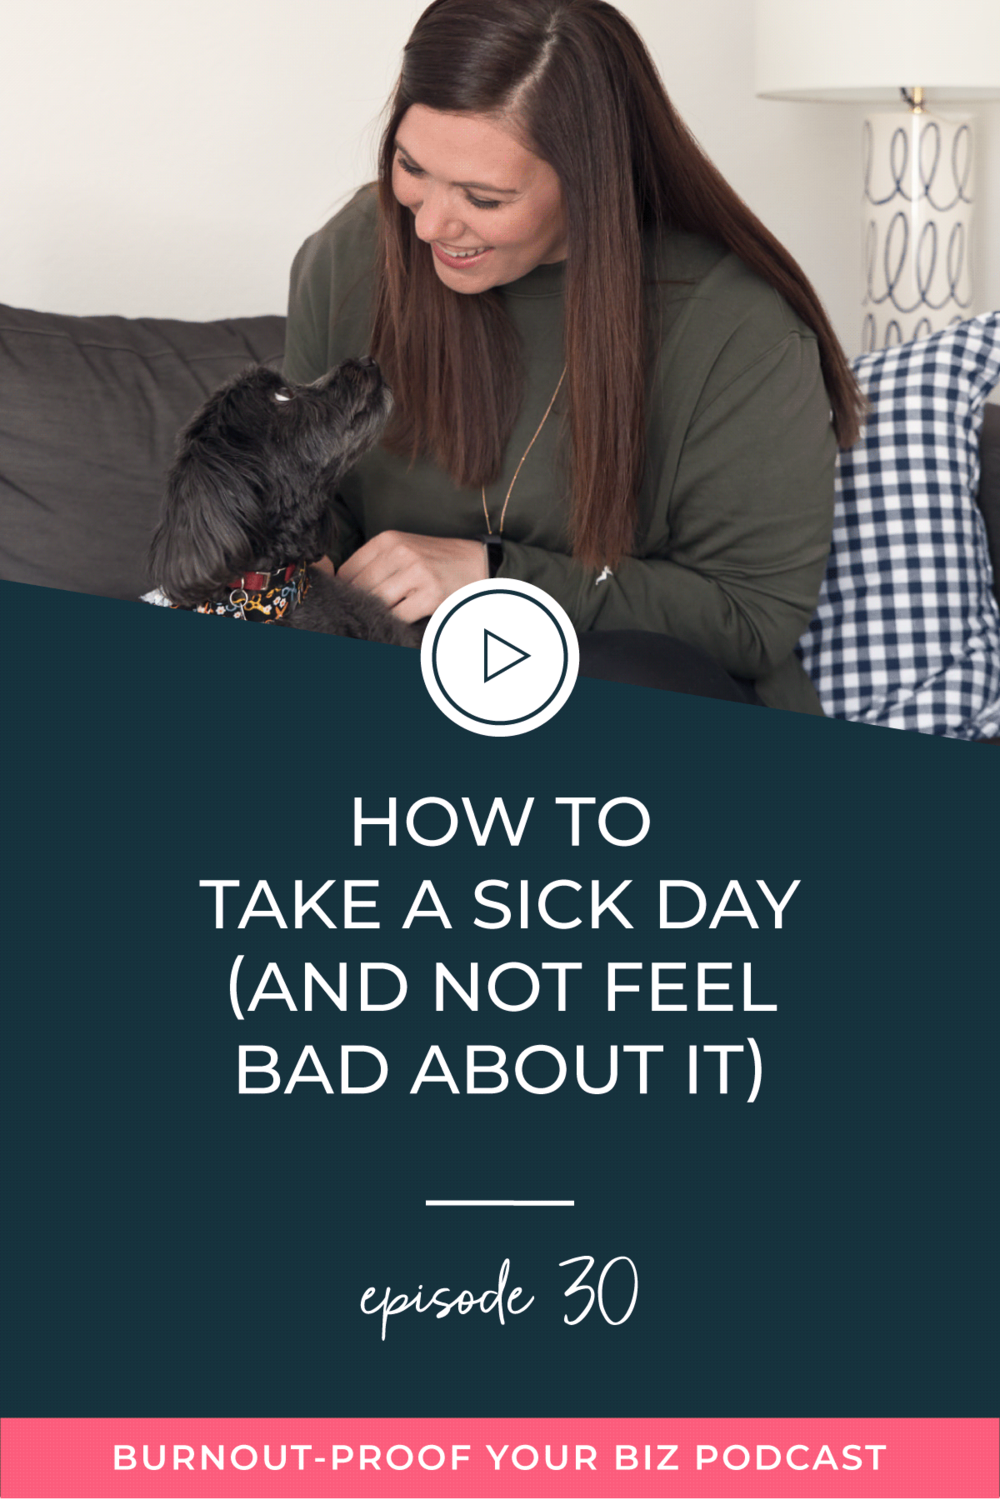 Burnout-Proof Your Biz Podcast with Chelsea B Foster | Episode 030 - How to Take a Sick Day (and Not Feel Bad About It) | Learn how to run your biz and live your dream life on your own terms without the fear of burnout.